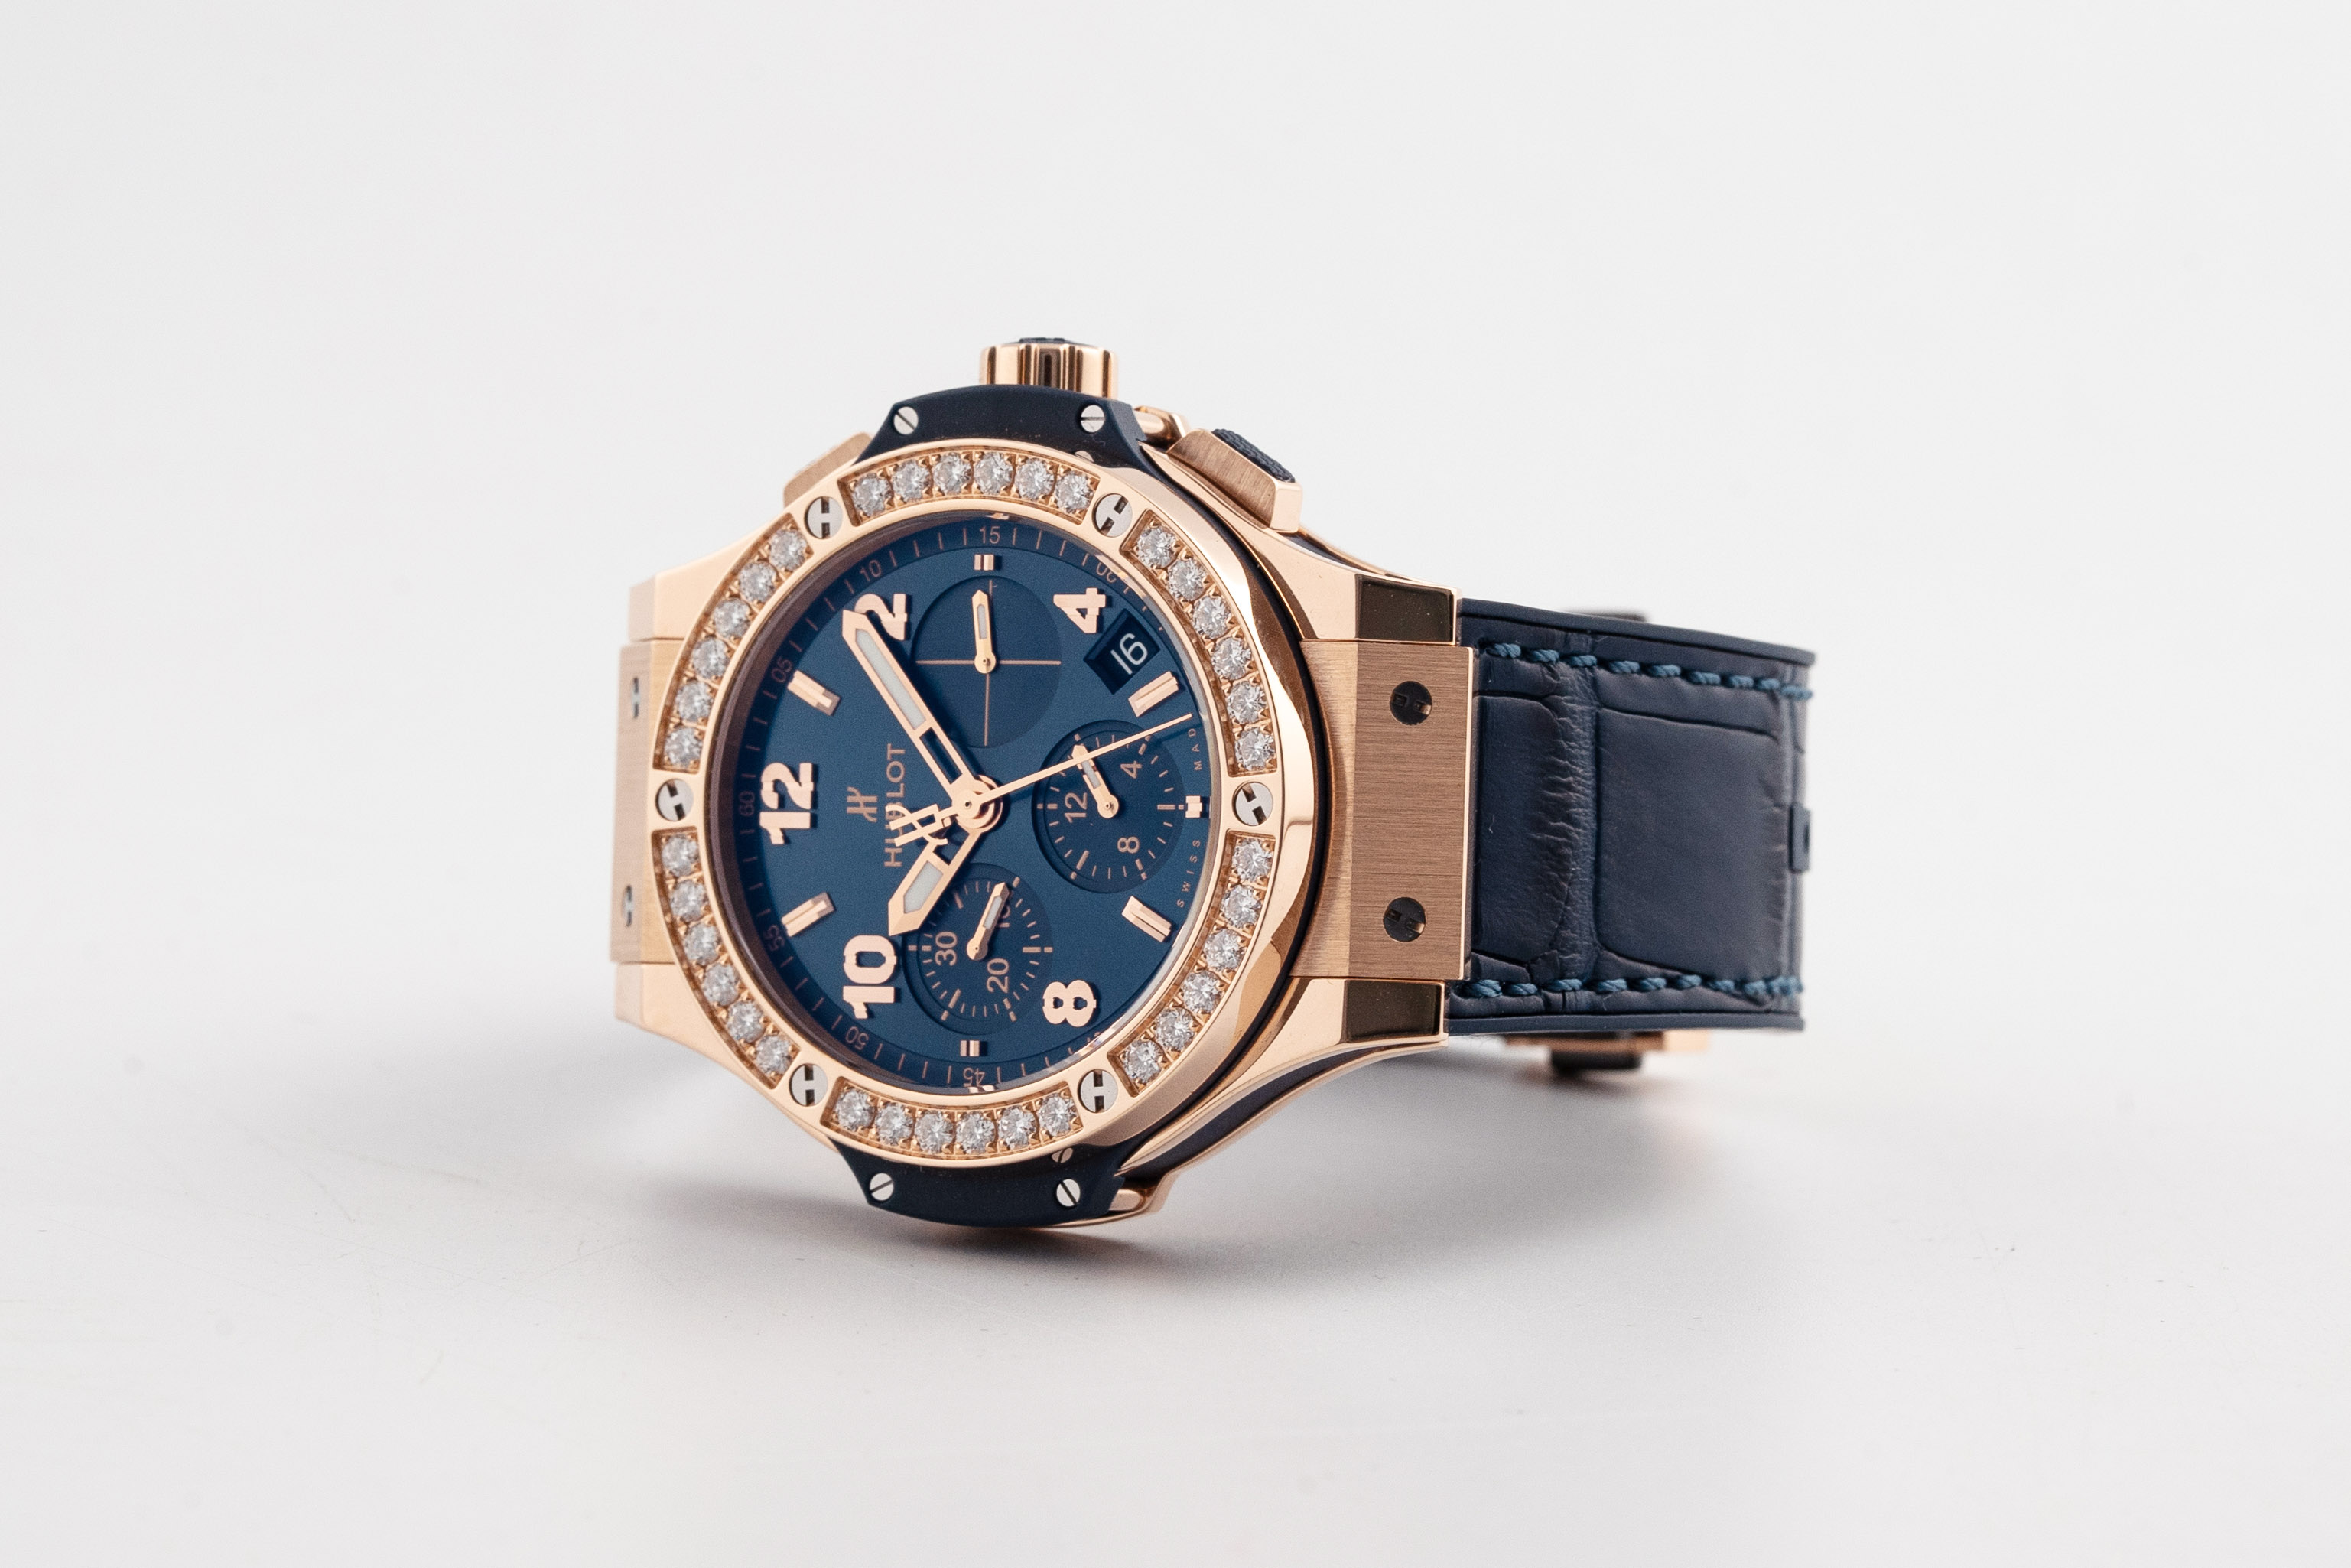 Đồng Hồ Hublot Big Bang Gold Blue Diamonds 41mm 341.PX.7180.LR.1204